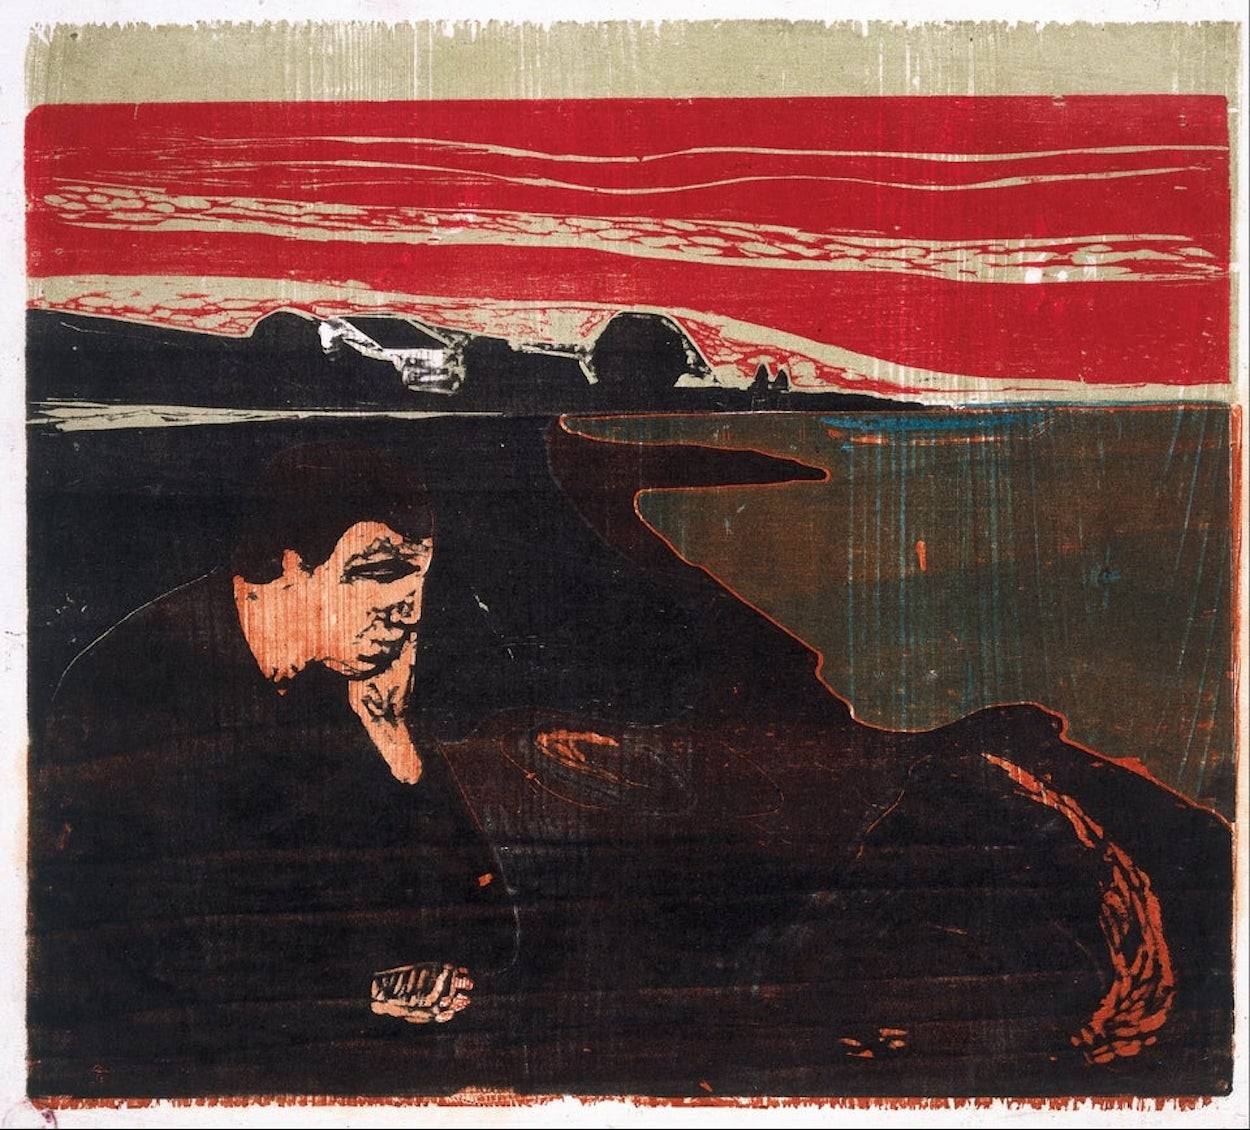 Evening. Melancholy I by Edvard Munch via DailyArt app, your daily dose of art getdailyart.com